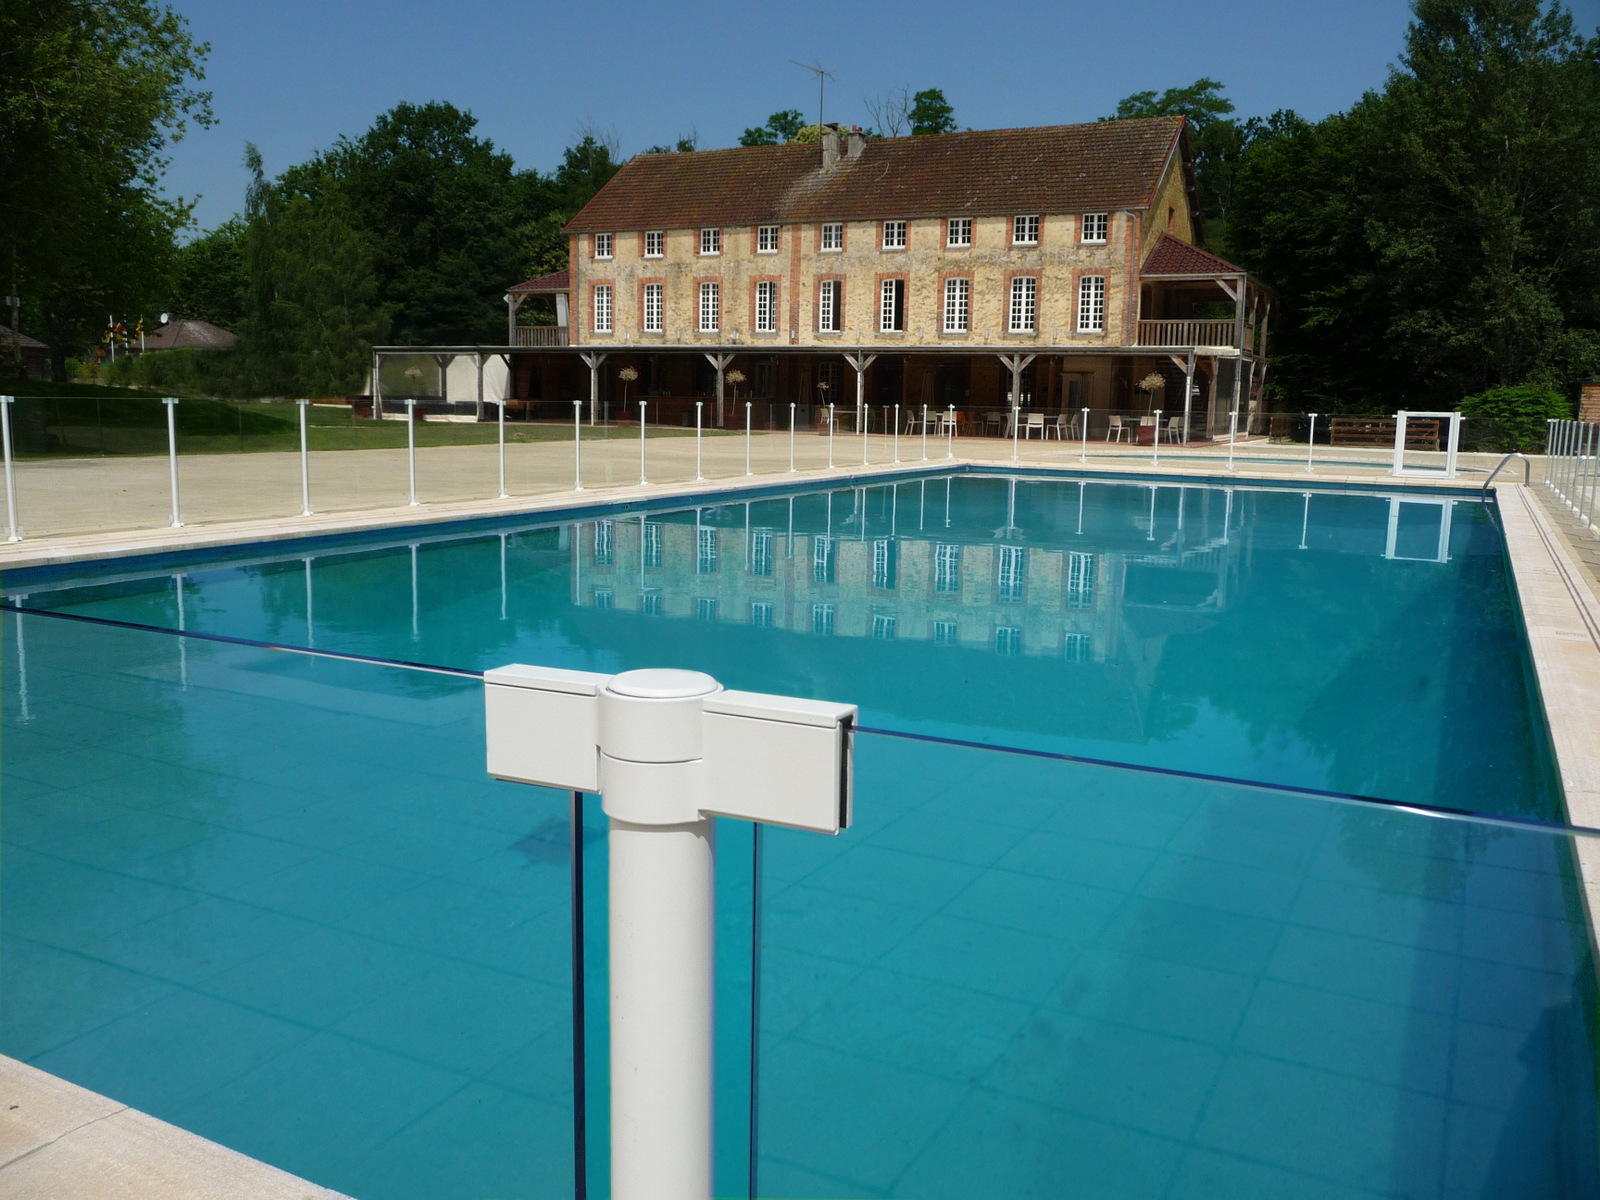 Barri re de piscine en aluminium et protection aluminium for Barriere piscine verre inox